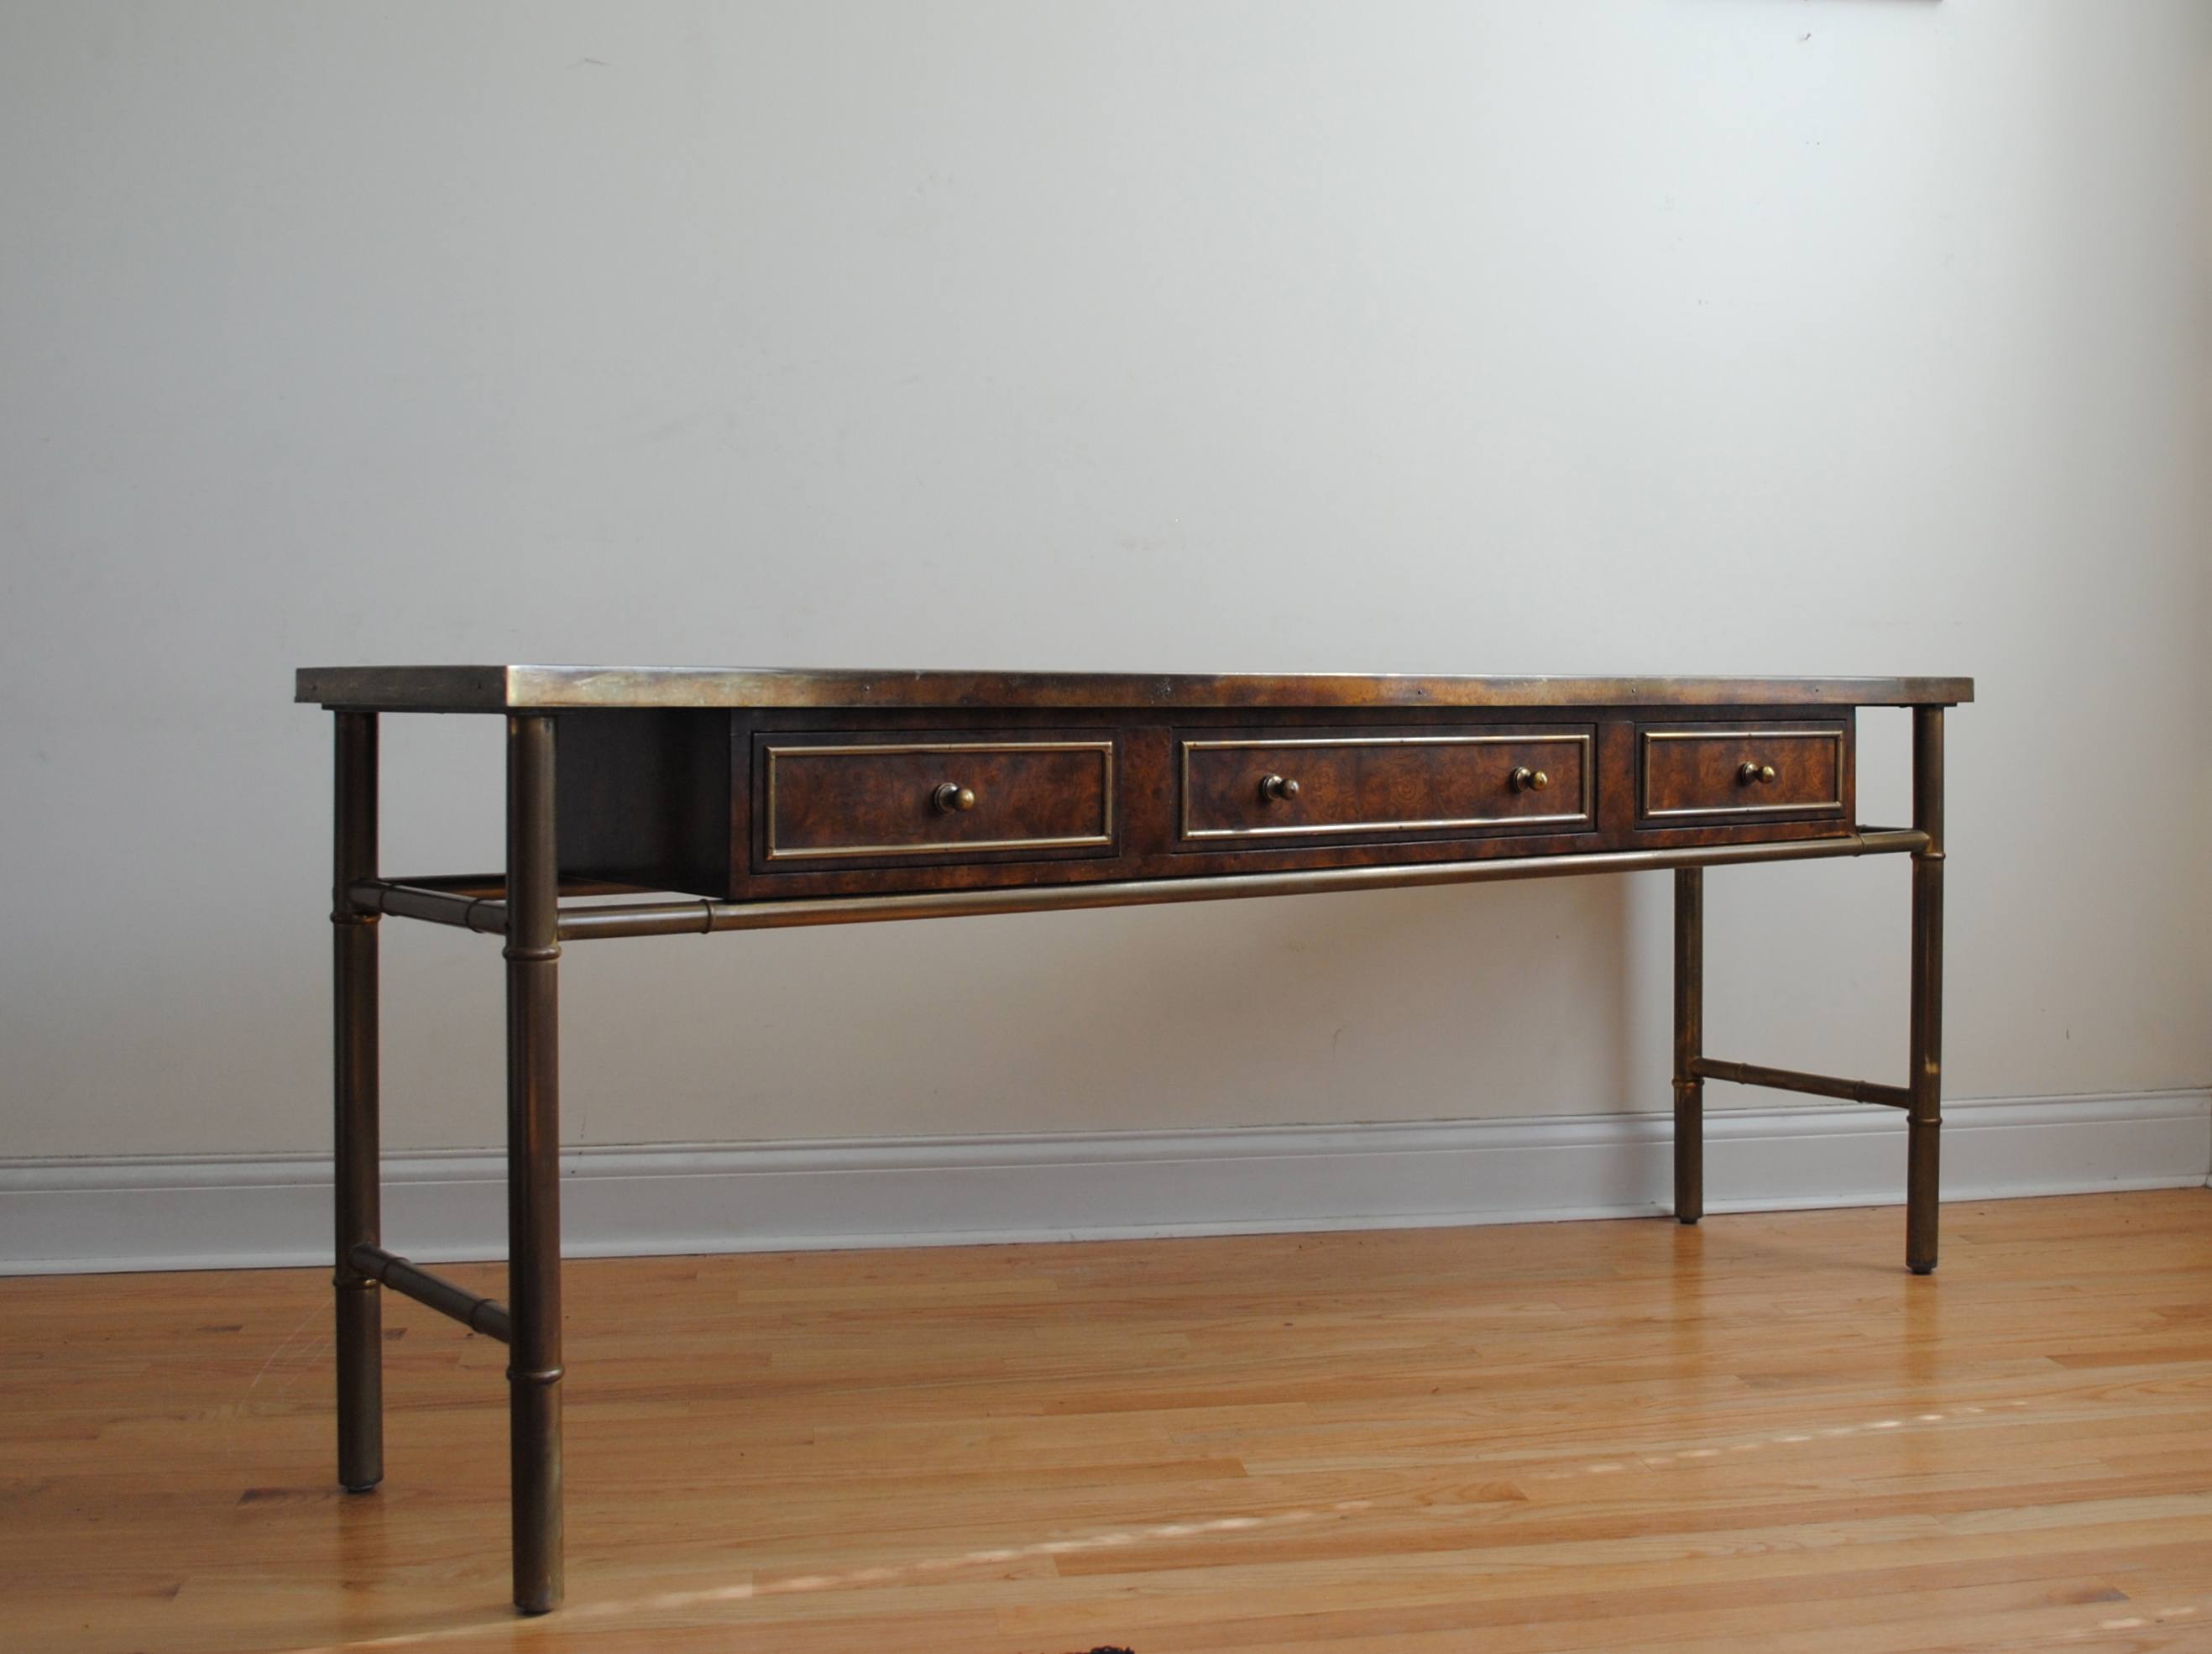 Exceptional Amazing Vintage Console Table By Mastercraft. Burl Wood And Patinated Brass  With Etched Top. Dimensions Are 72u2033L X 18u2033W X 28u2033H. Please Contact Me With  Any ...